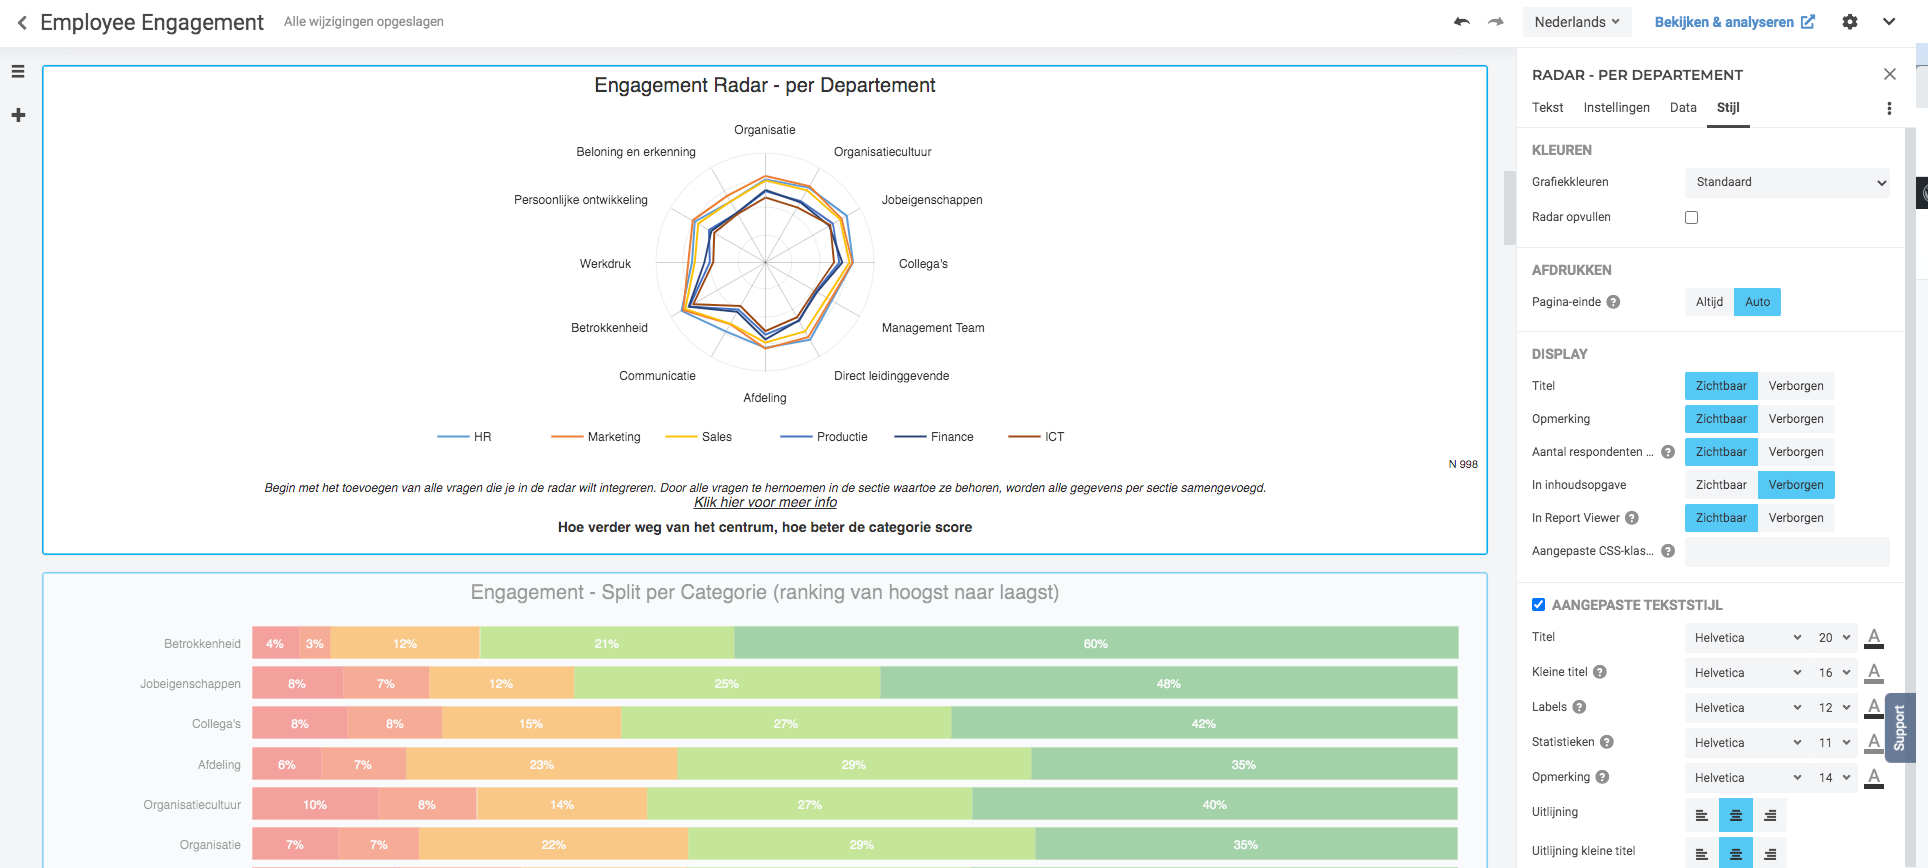 Employee-engagement-survey-report